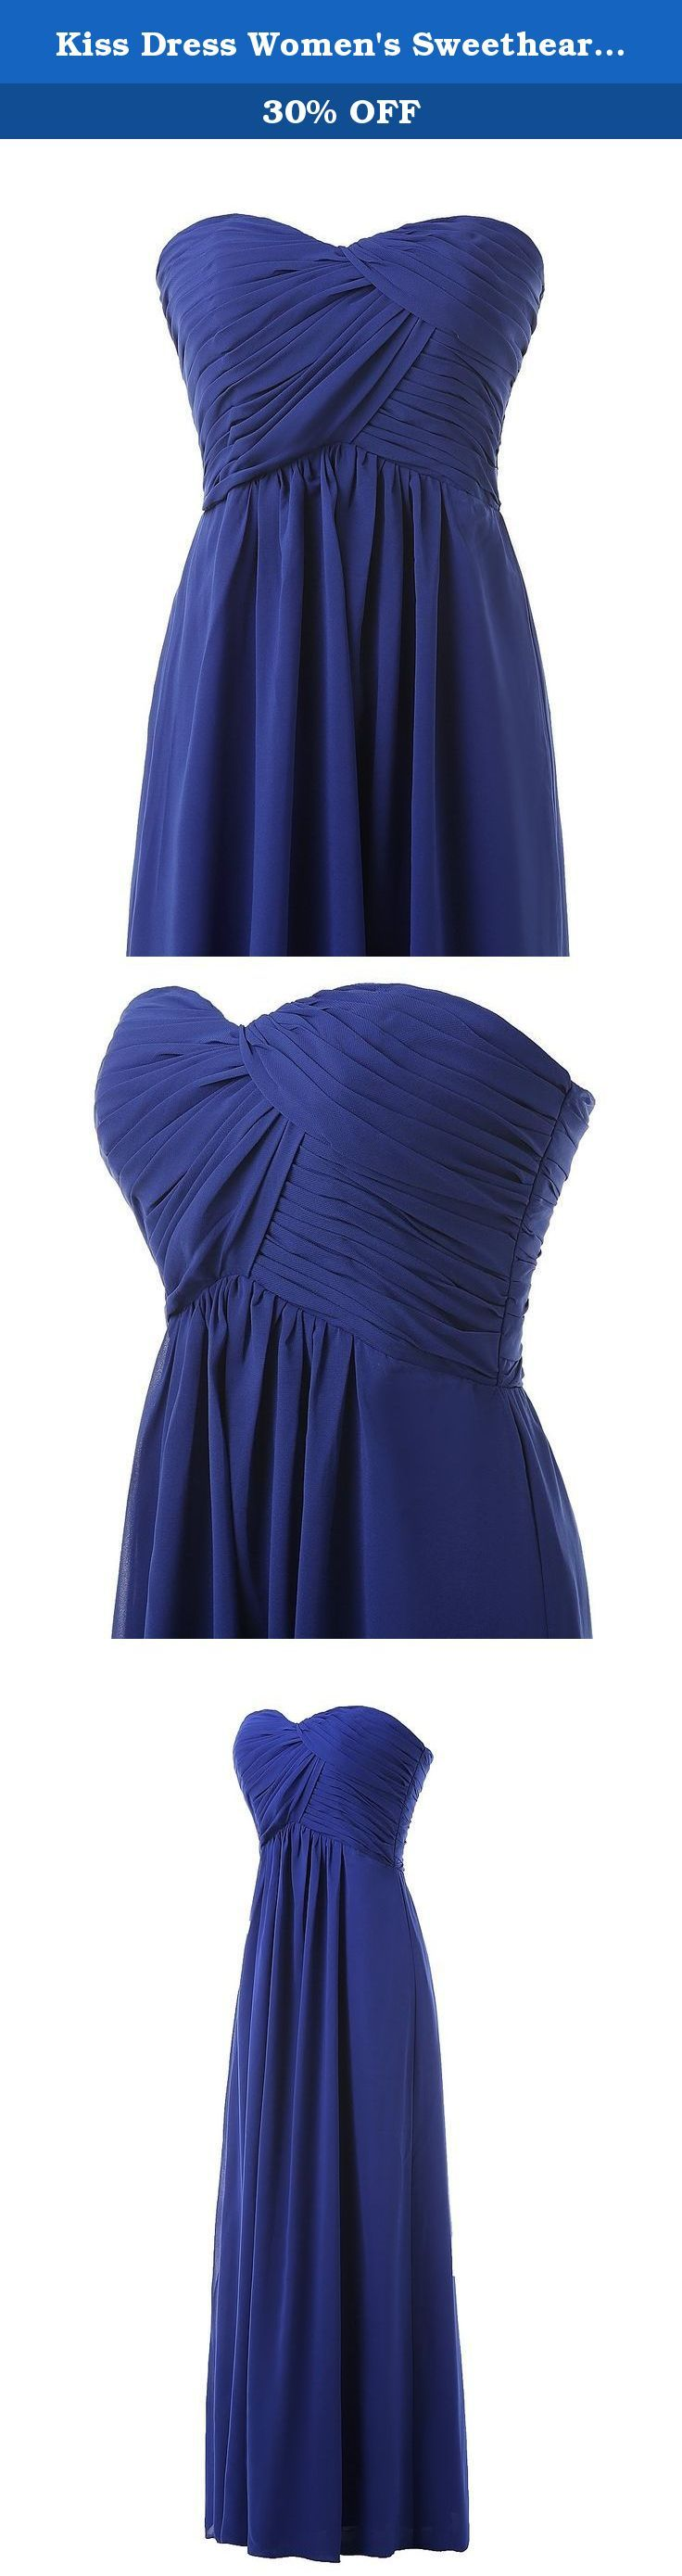 Kiss Dress Women's Sweetheart Chiffon Long Bridesmaid Dresses L Royal Blue. Waistline :Empire Sleeve style :Sleeveless Dress lenth :Floor Length Neckline :Sweetheart Decoration :Ruffles Sihouette :A line Best choice for wedding bridal bridesmaid prom evening cocktail Note :As different computers display colors differently, the color of the actual item may vary slightly from the images,thanks for your understanding.